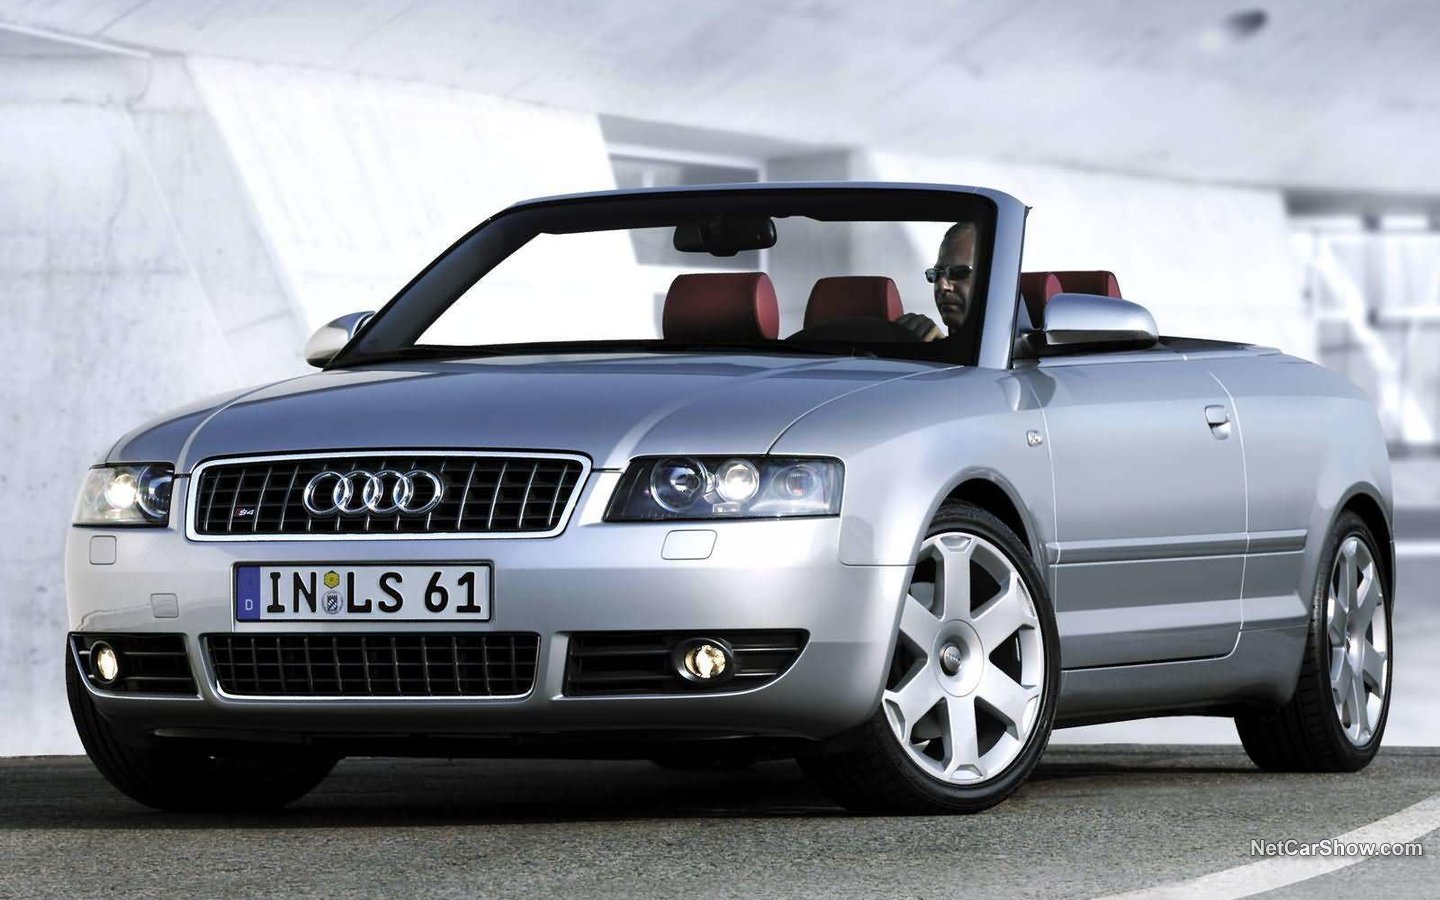 Audi A4 S4 Cabriolet 2004 b149a3f1